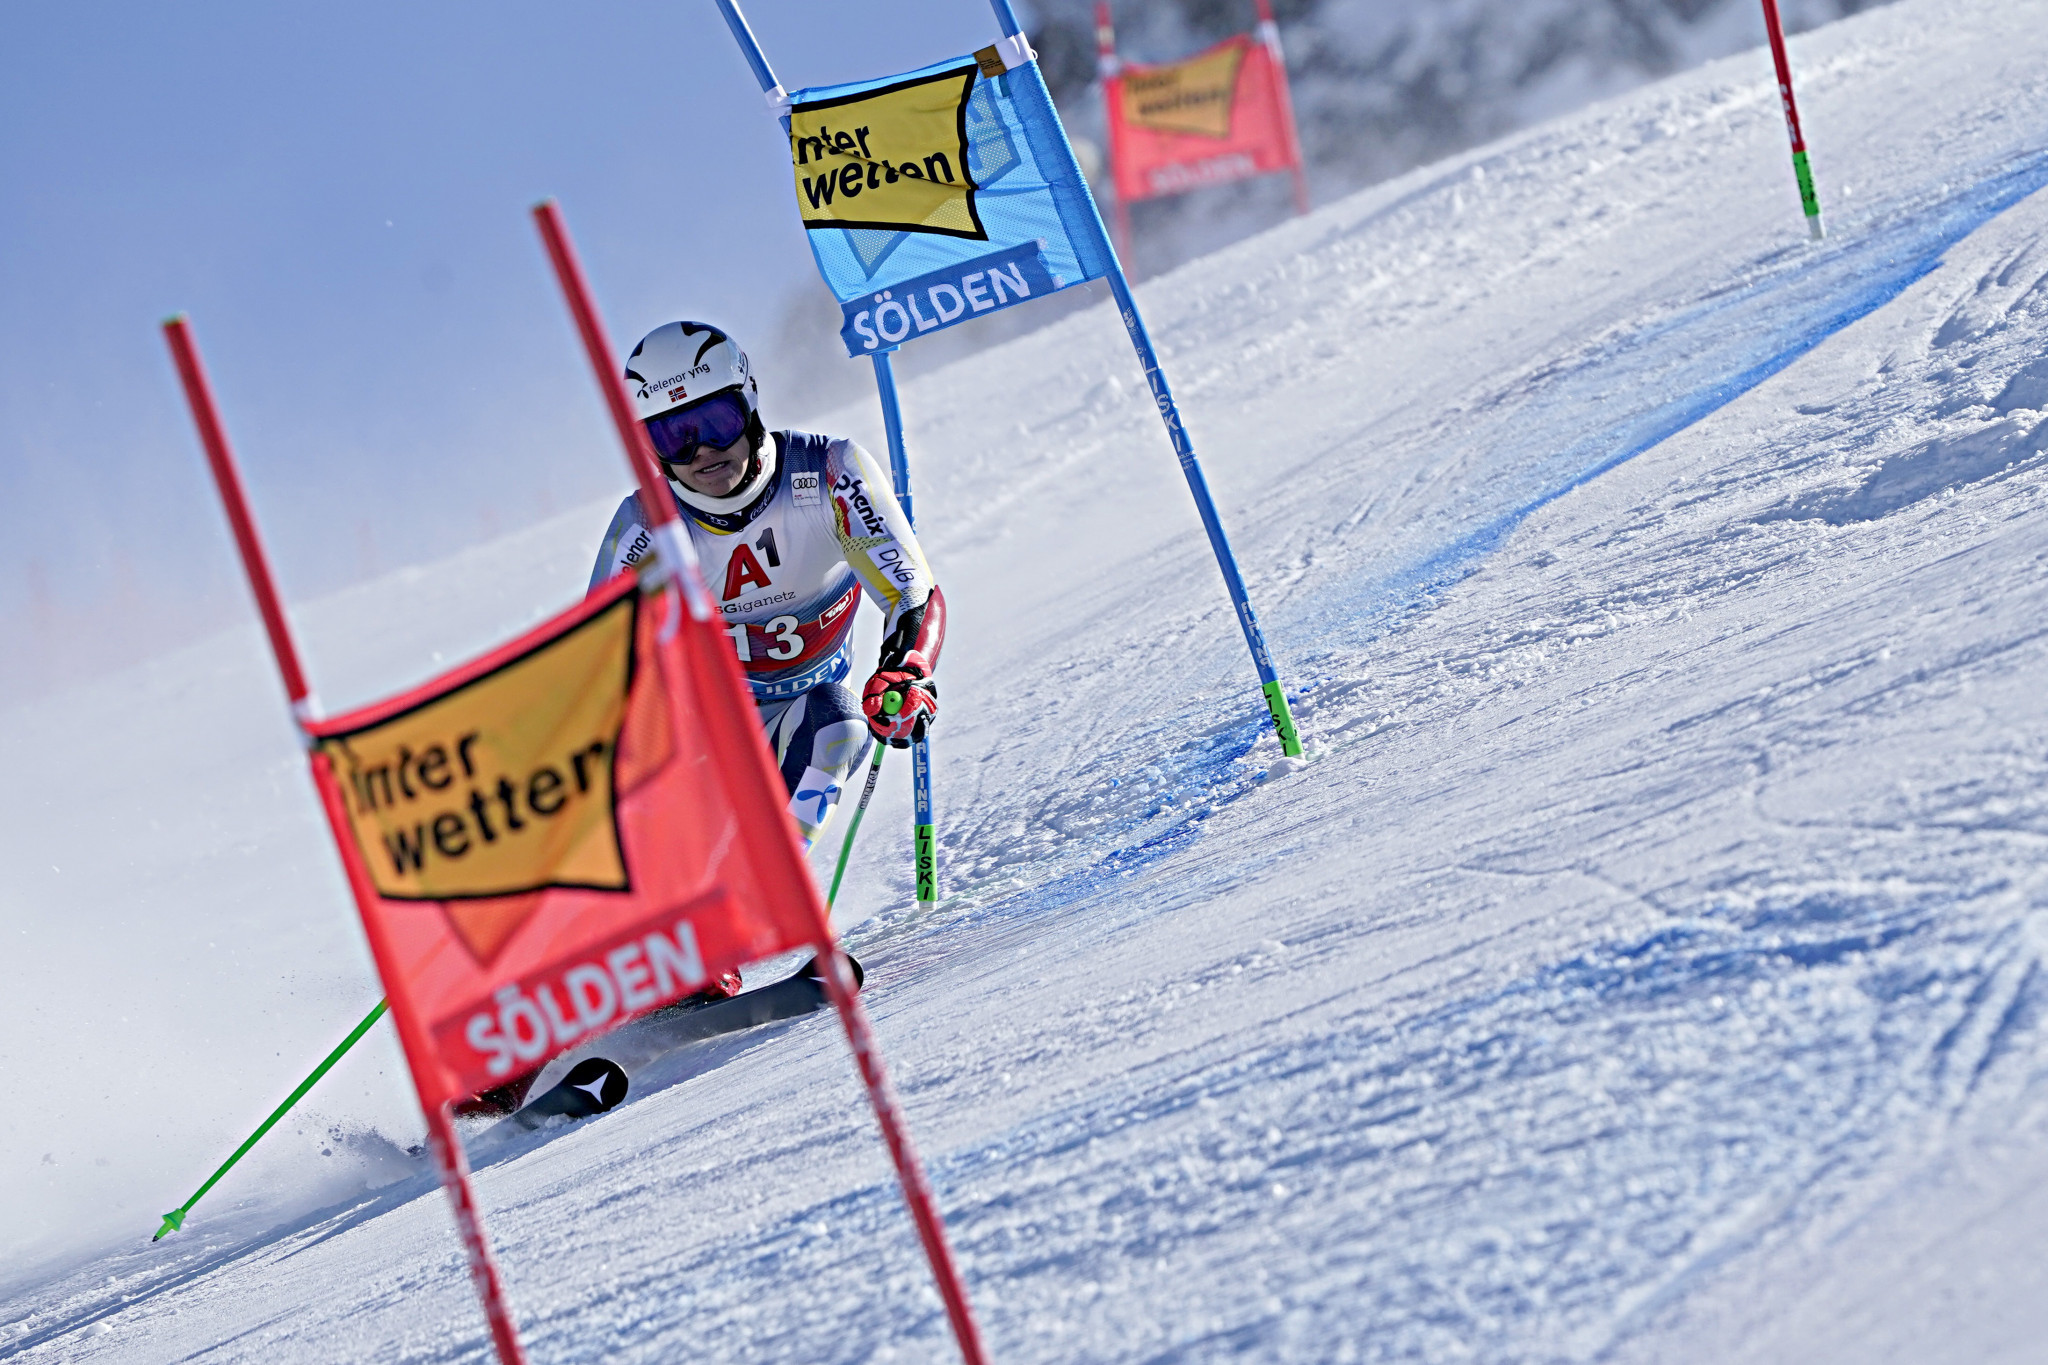 Braathen takes first FIS Alpine Ski World Cup win at Sölden season opener